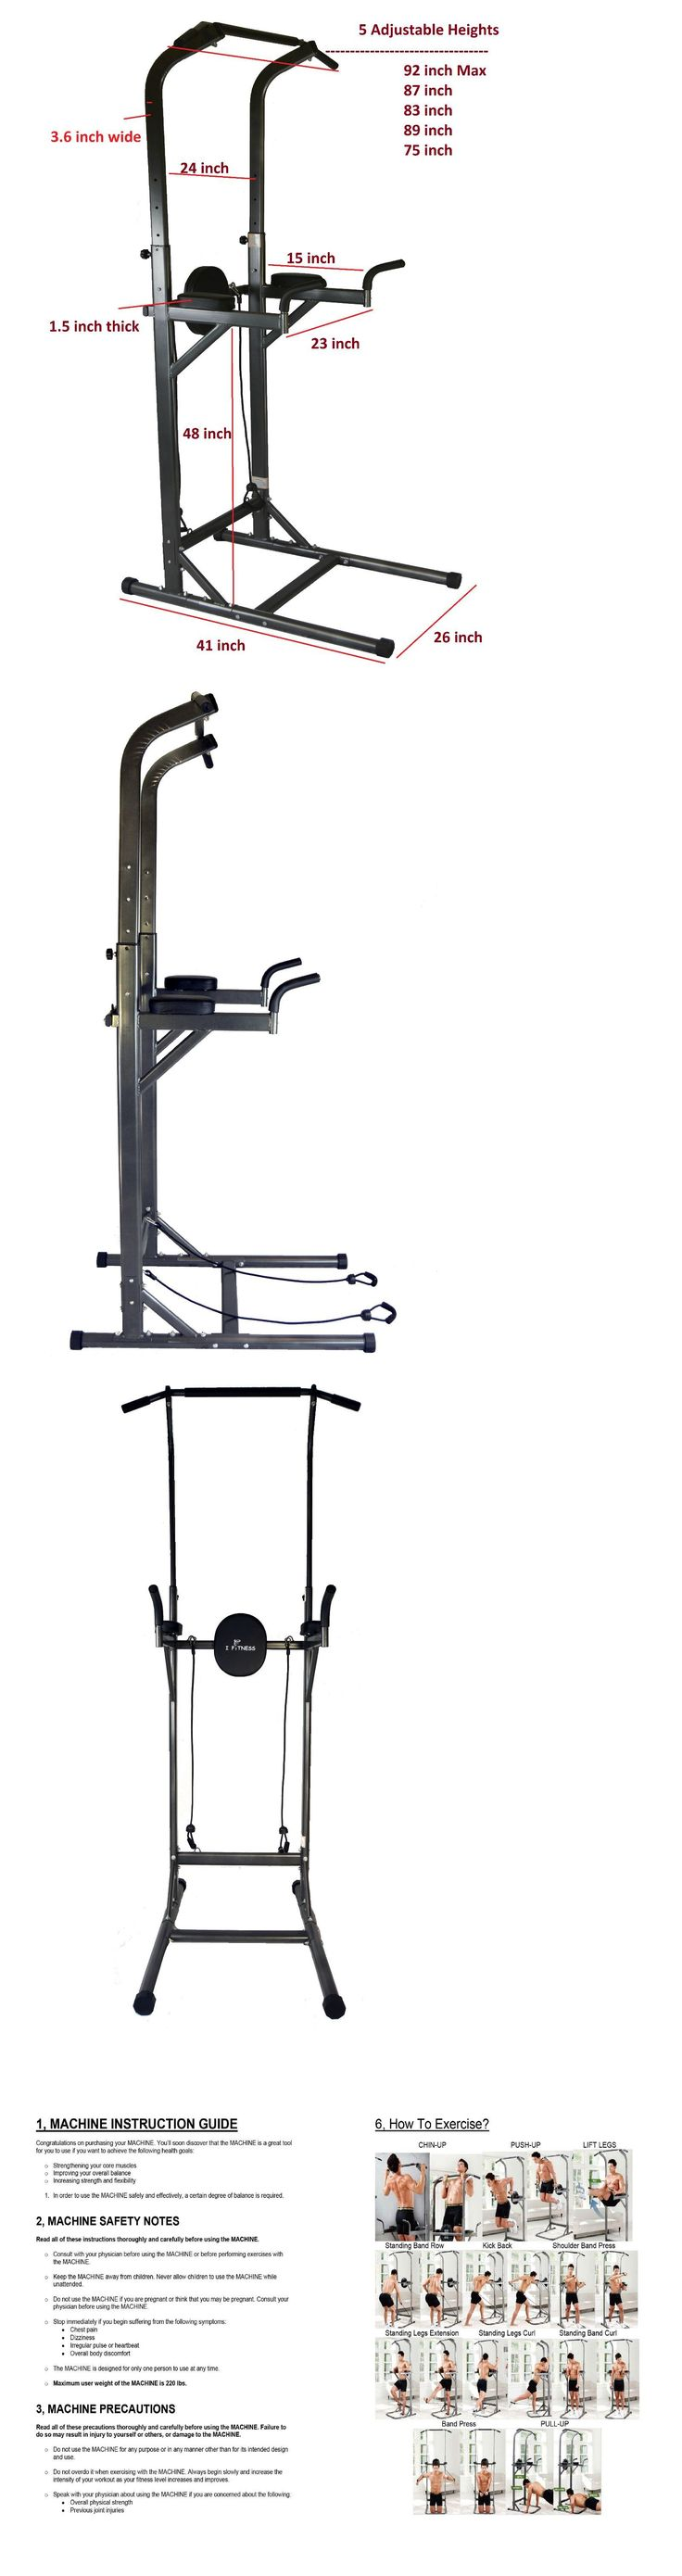 Pull Up Bars 179816: Deluxe Sturdy Chin Up Vkr Dip Station Power Tower Sturdy Push Up Pull Up Bar New BUY IT NOW ONLY: $118.5